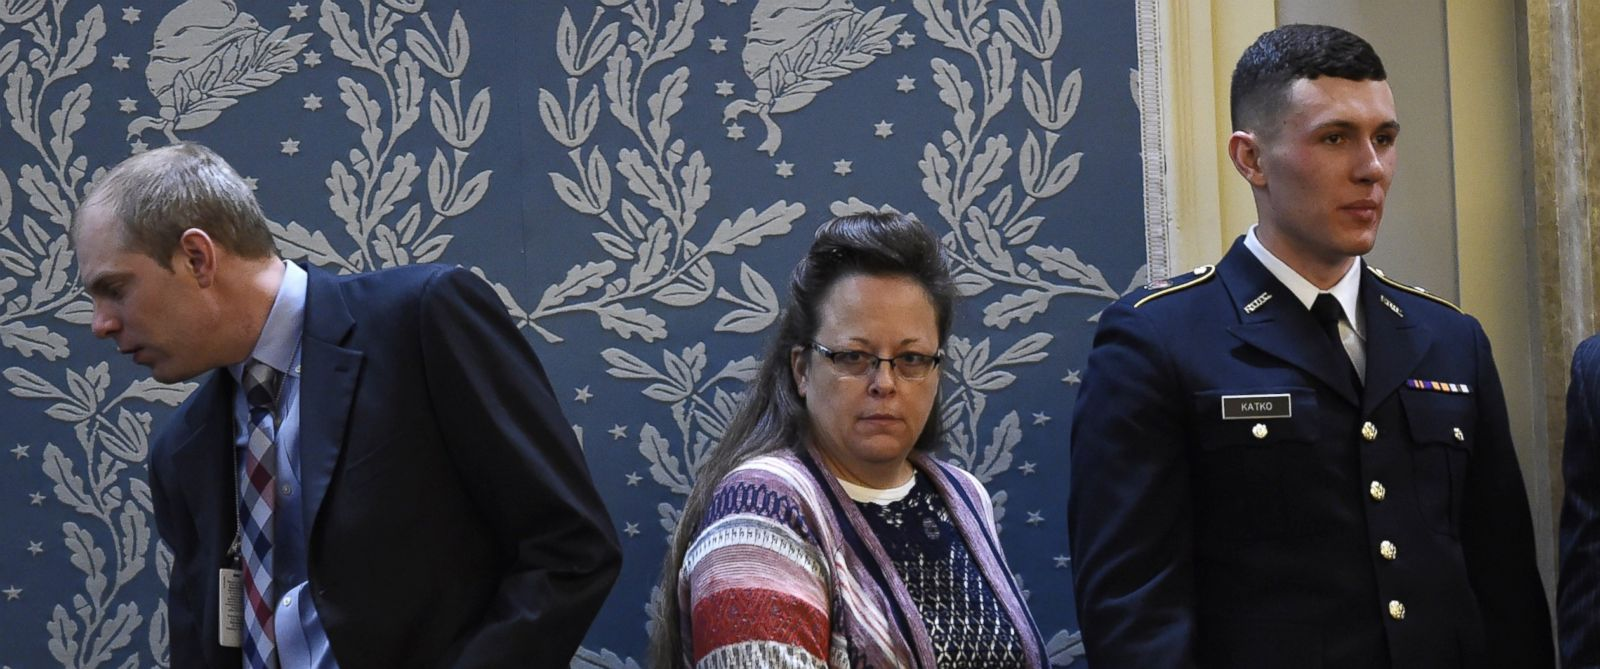 PHOTO: Kim Davis, center, the Rowan County clerk in Kentucky, arrives before President Barack Obama delivers the State of the Union Address during a Joint Session of Congress at the Capitol in Washington, D.C., Jan. 12, 2016.